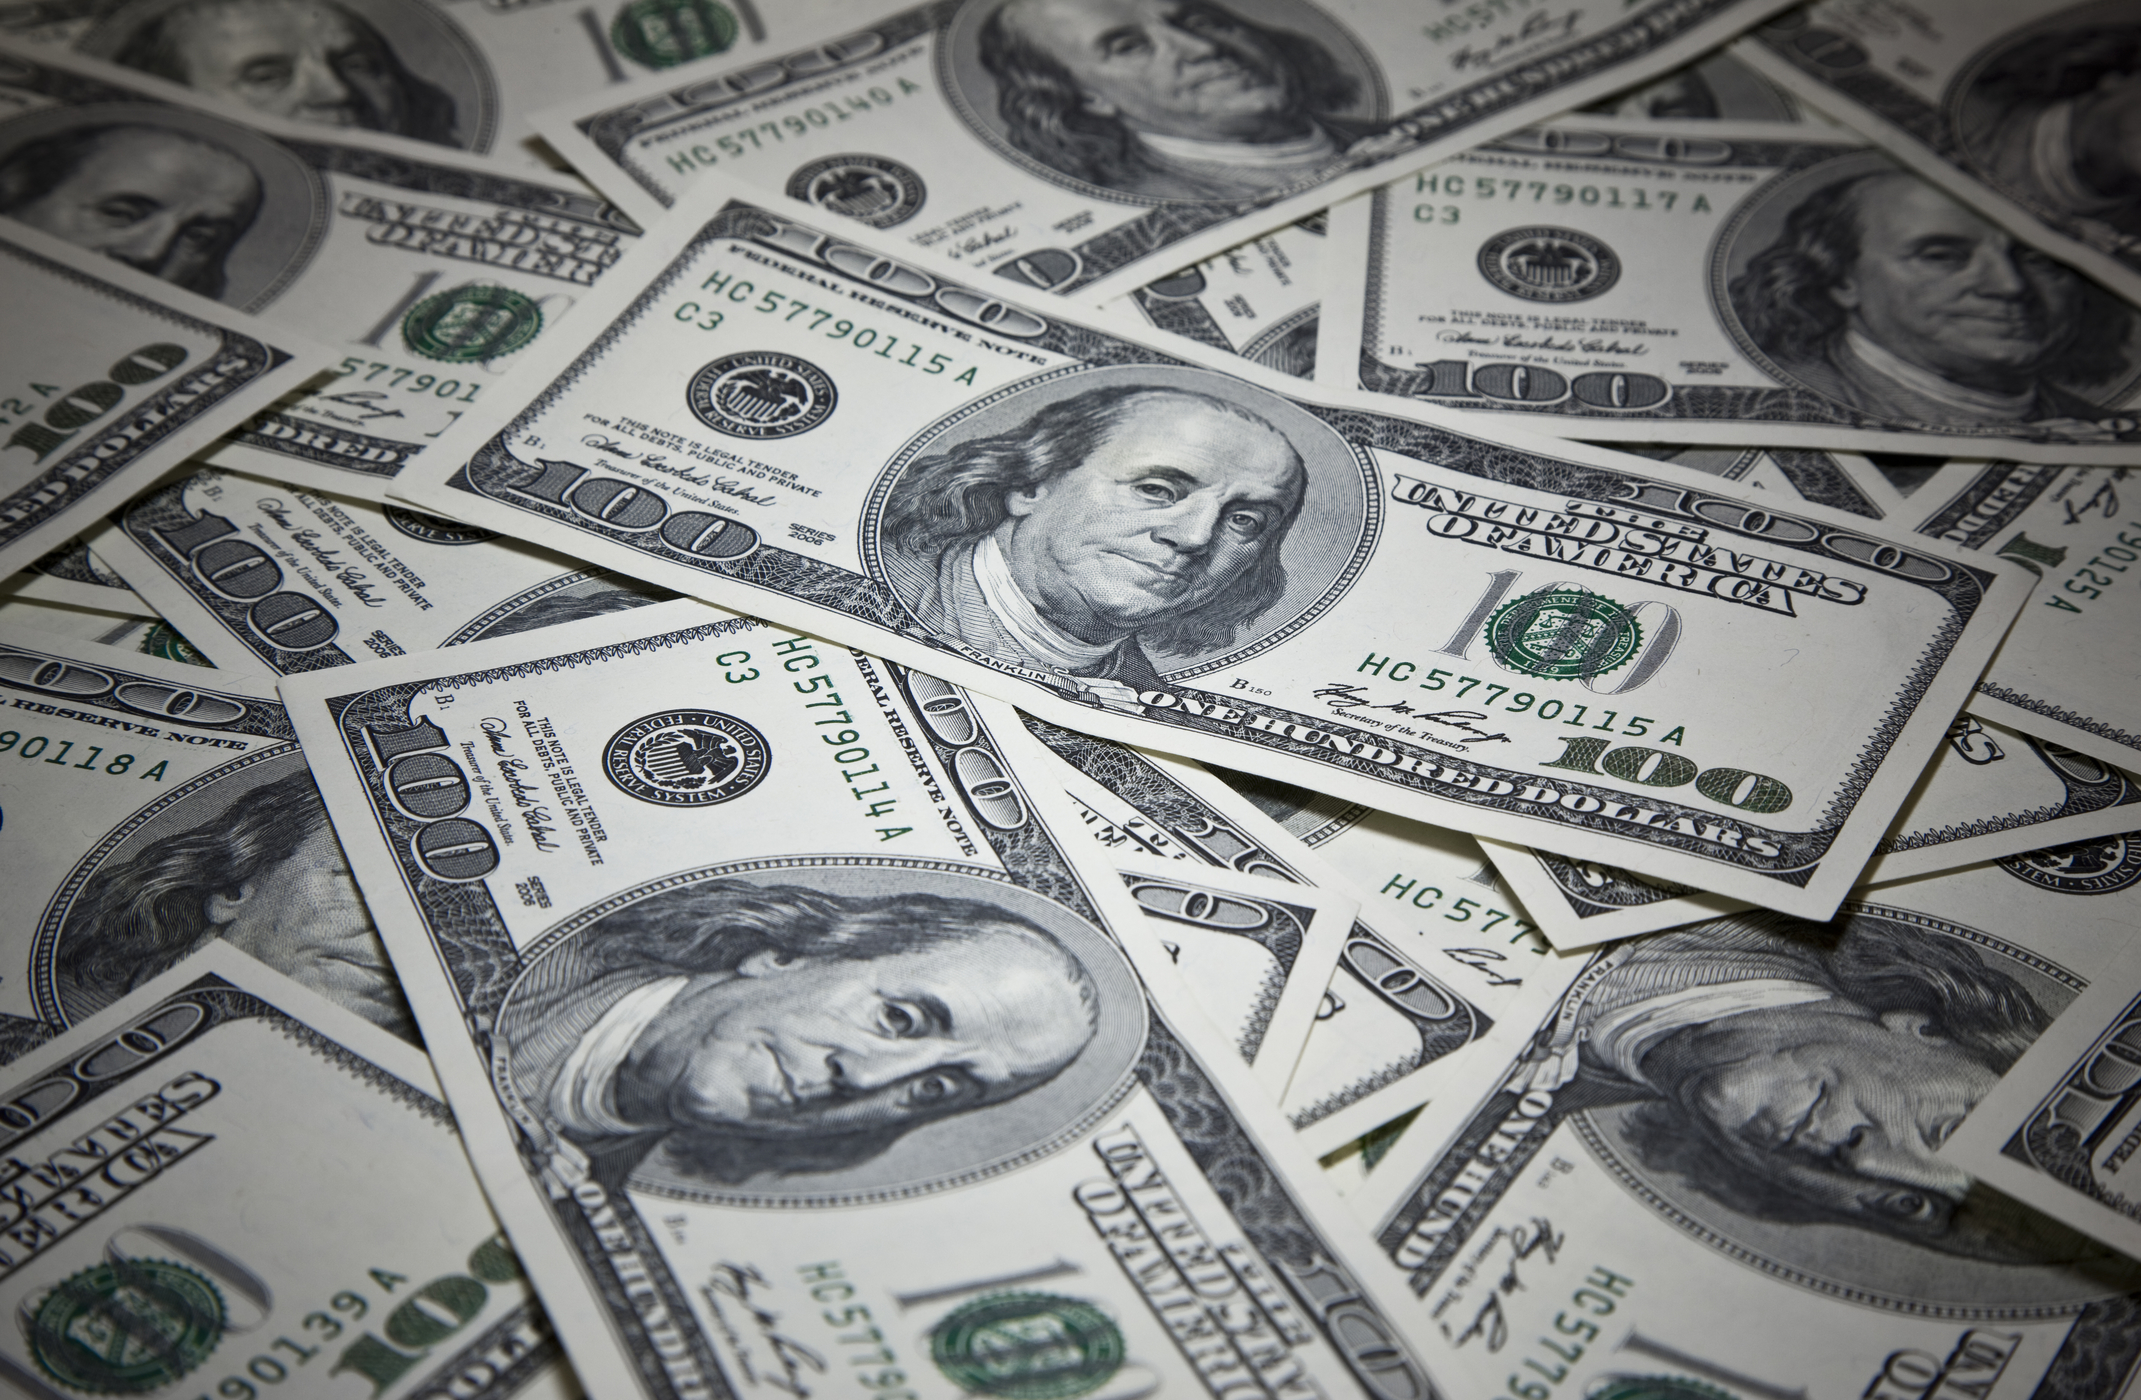 Man finds $7.5 million..and gives it back!